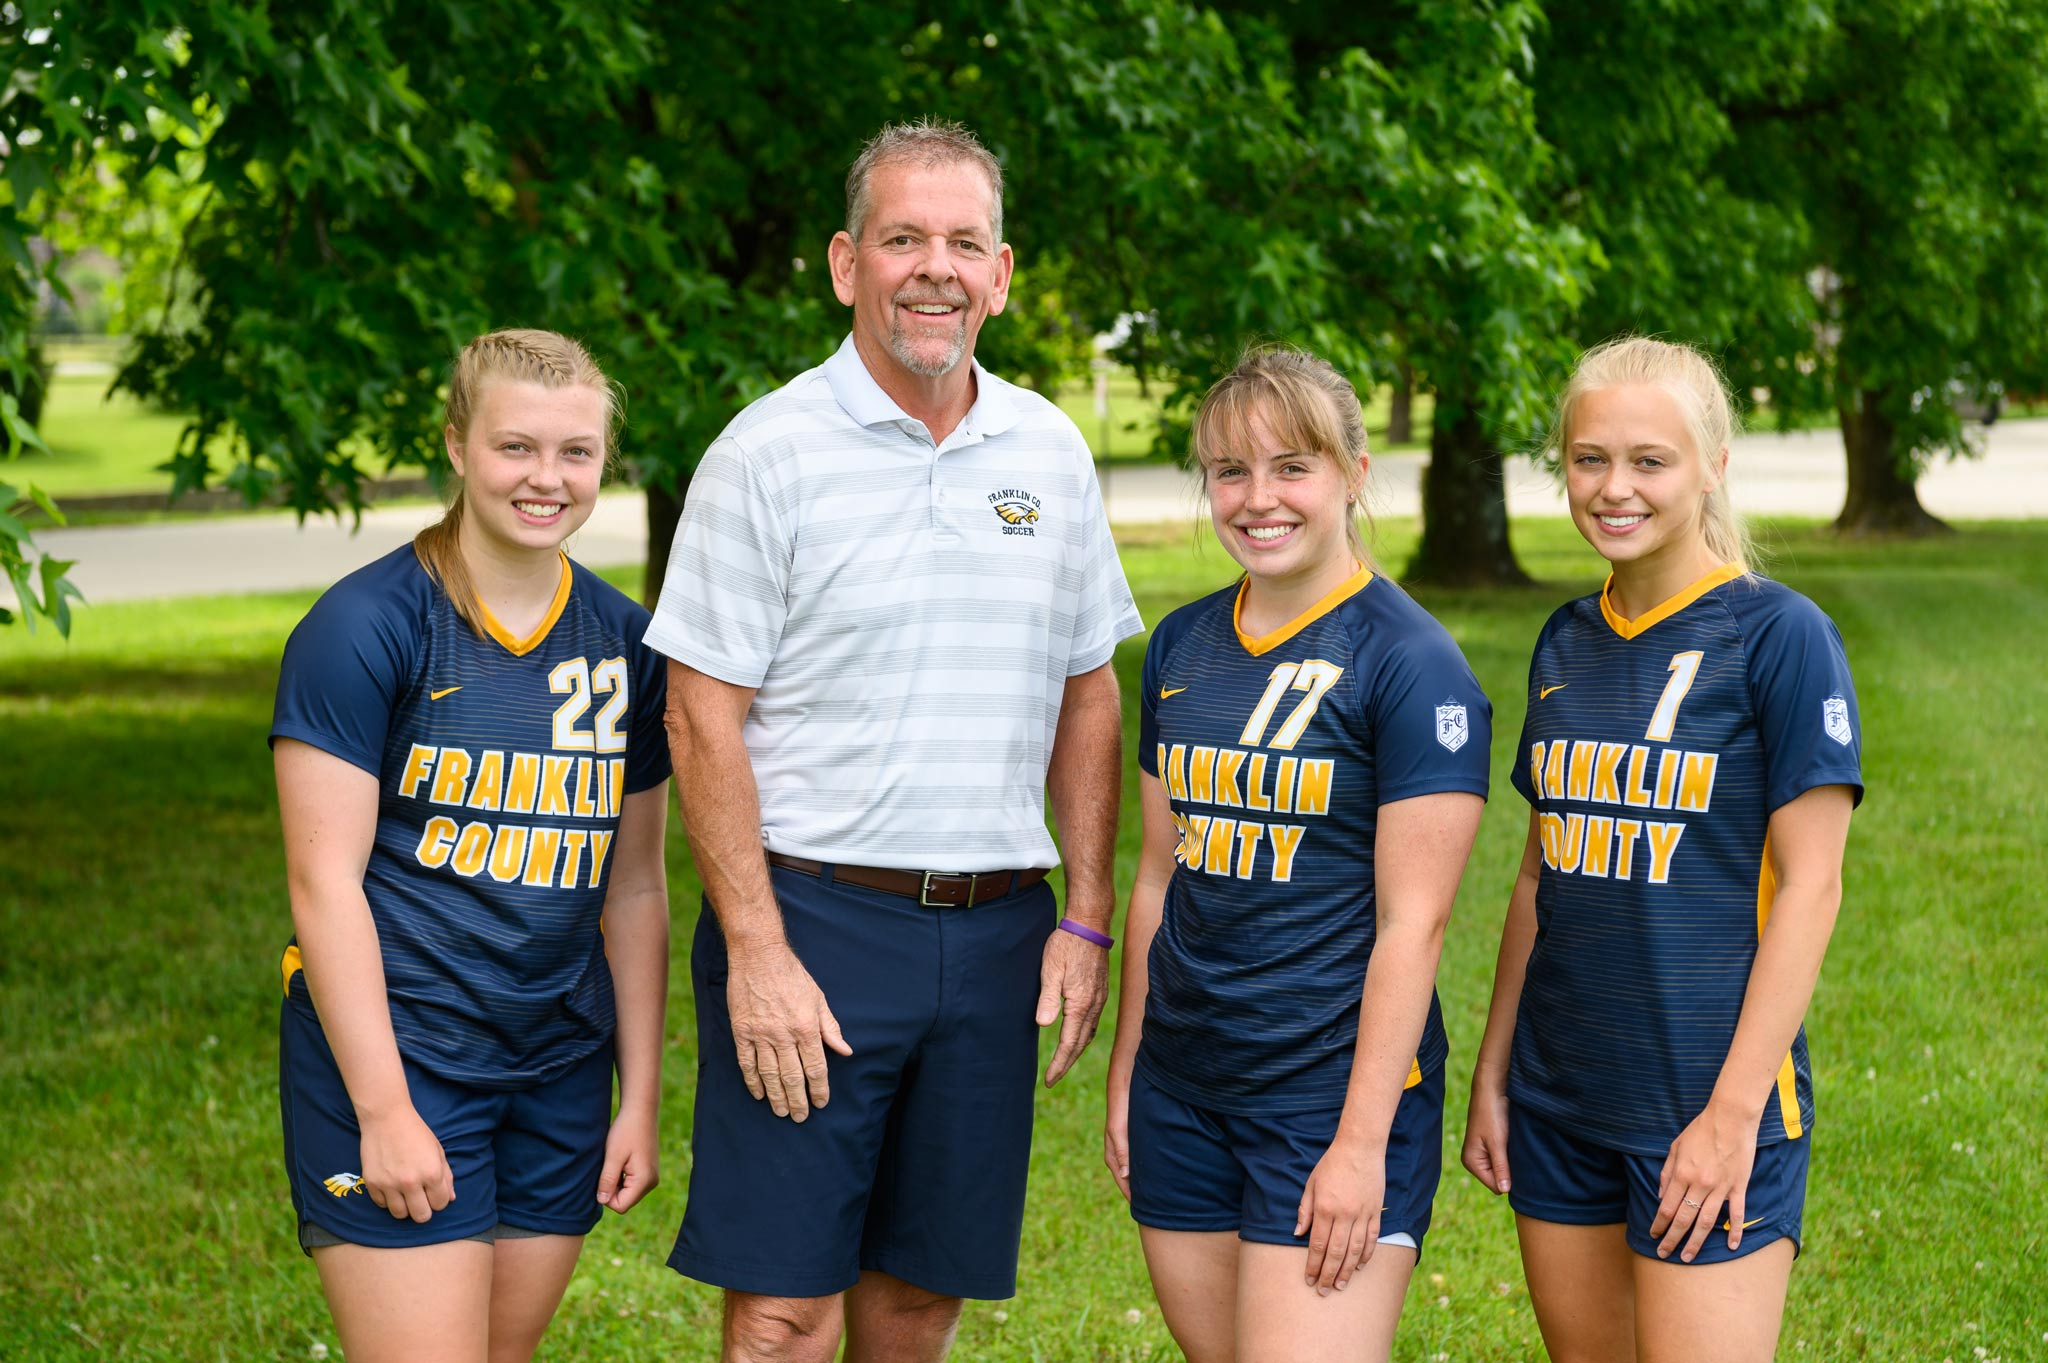 The three girls pose smiling with Coach Jon Sutphin, a tall middle aged man with a beard.